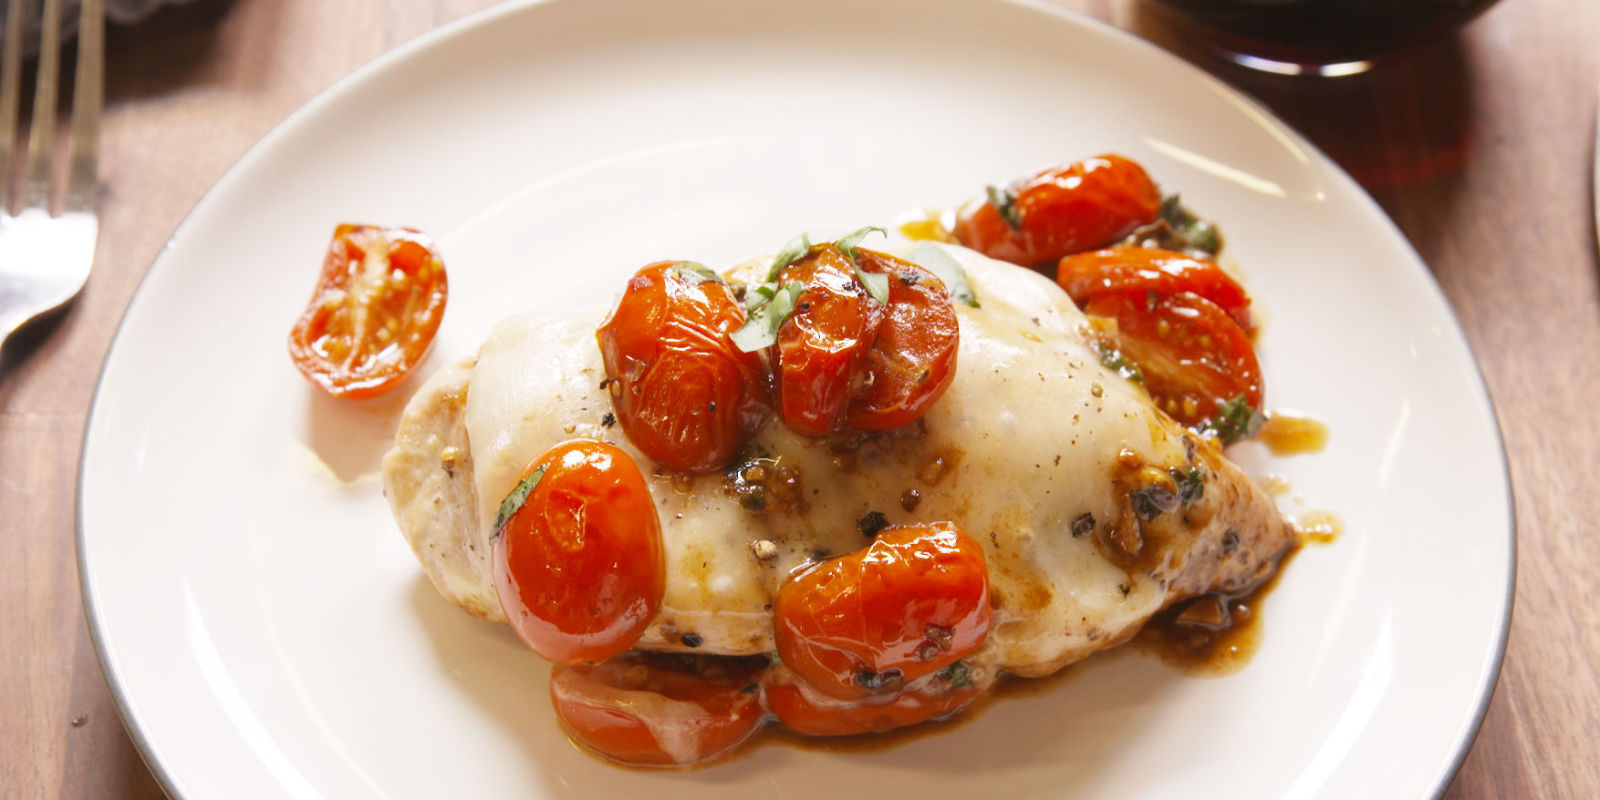 Best Caprese Chicken Recipe - How To Make Caprese Chicken